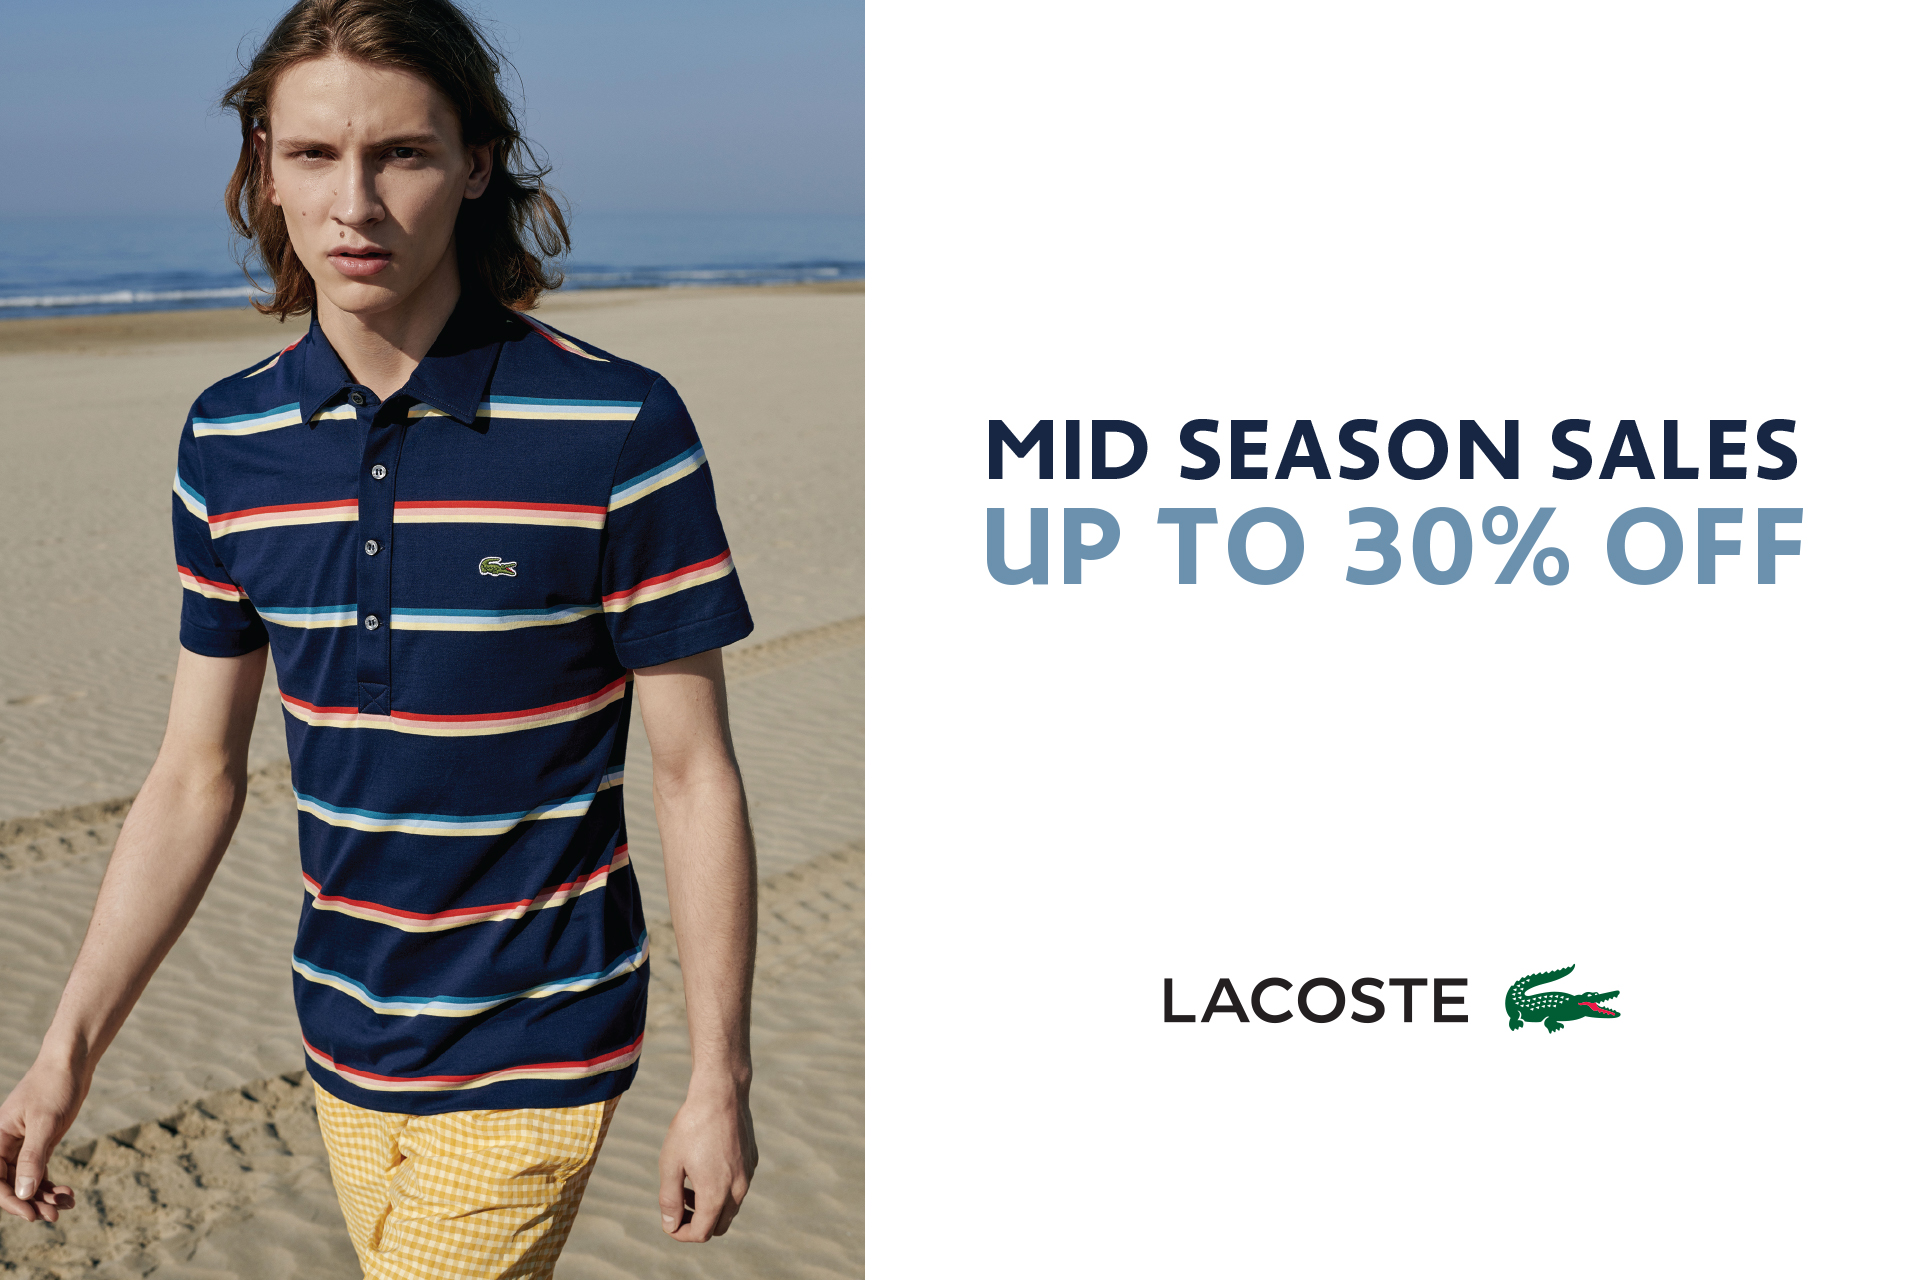 8c8111e485 Lacoste Mid Season Sales! Up to 30% OFF on All Spring Summer 2019  Collection.